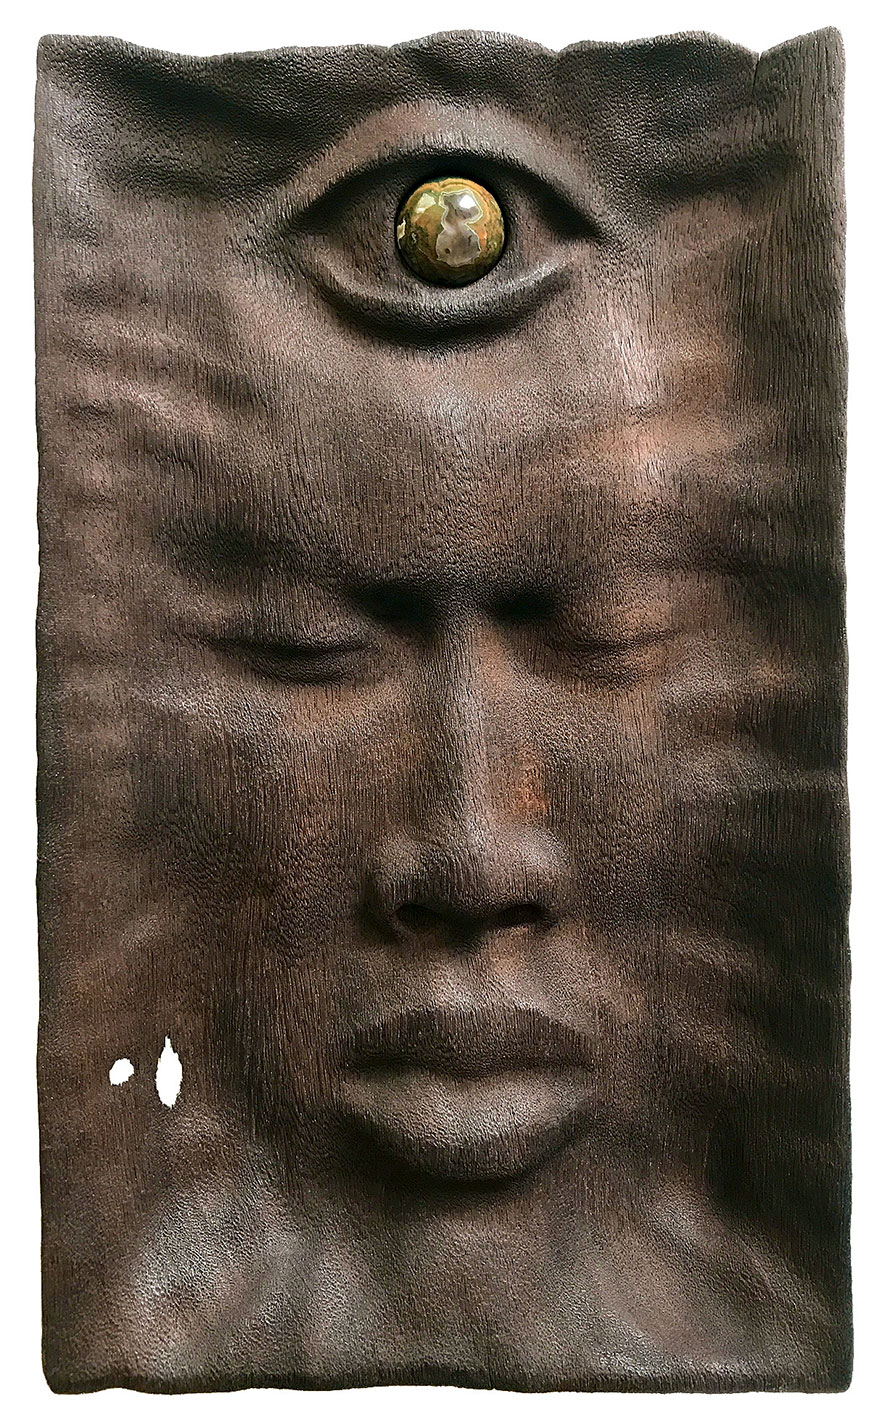 Ayahuasca-visions-showed-artist-an-ancient-woodworking-technique-that-he-is-now-using-to-produce-unique-wood-sculptures-596340c717e90__880.jpg